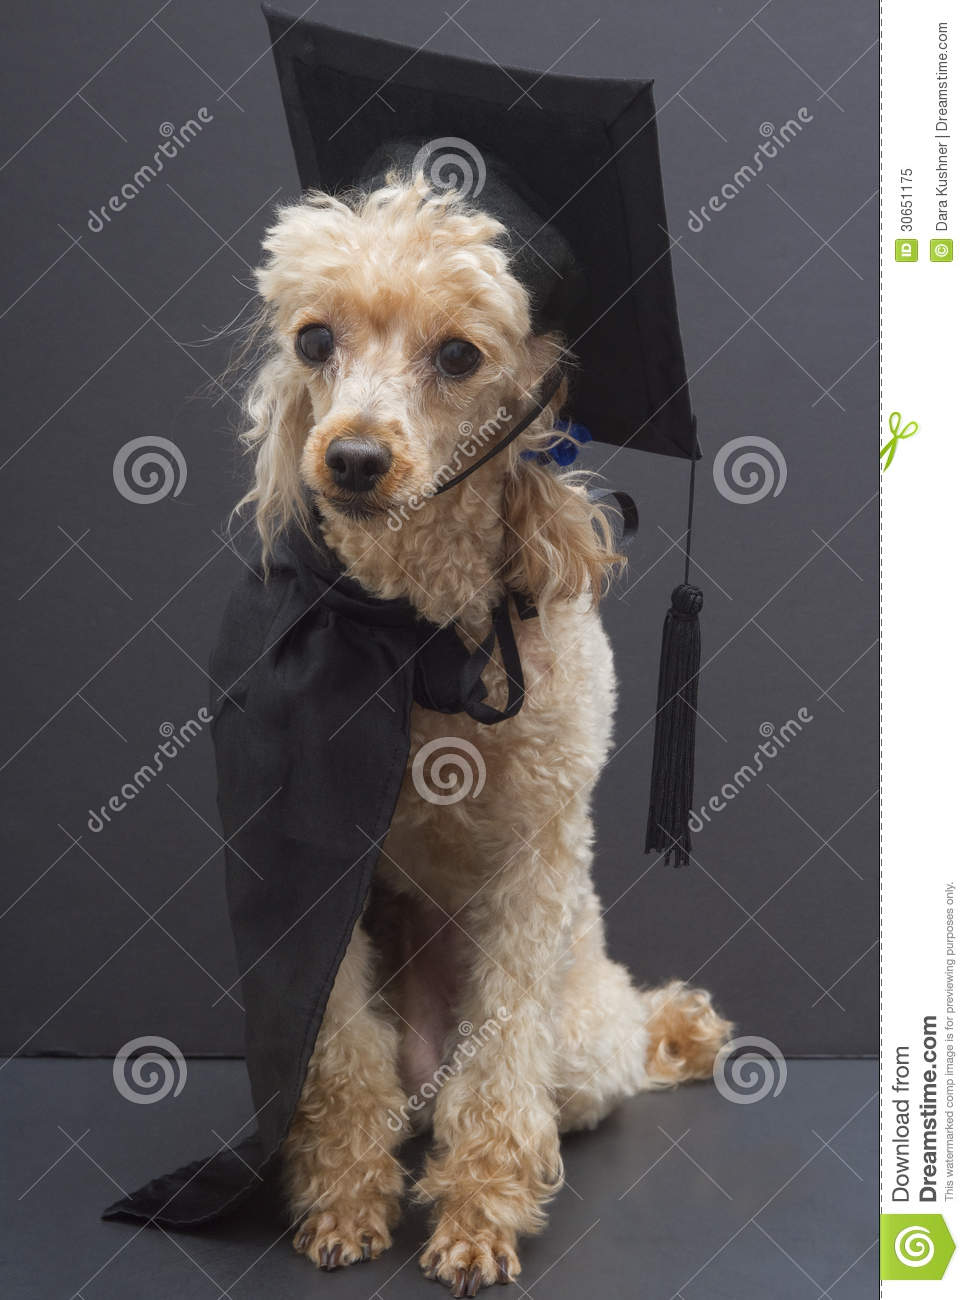 Poodle In Graduation Cap And Gown Stock Image Image Of Animal